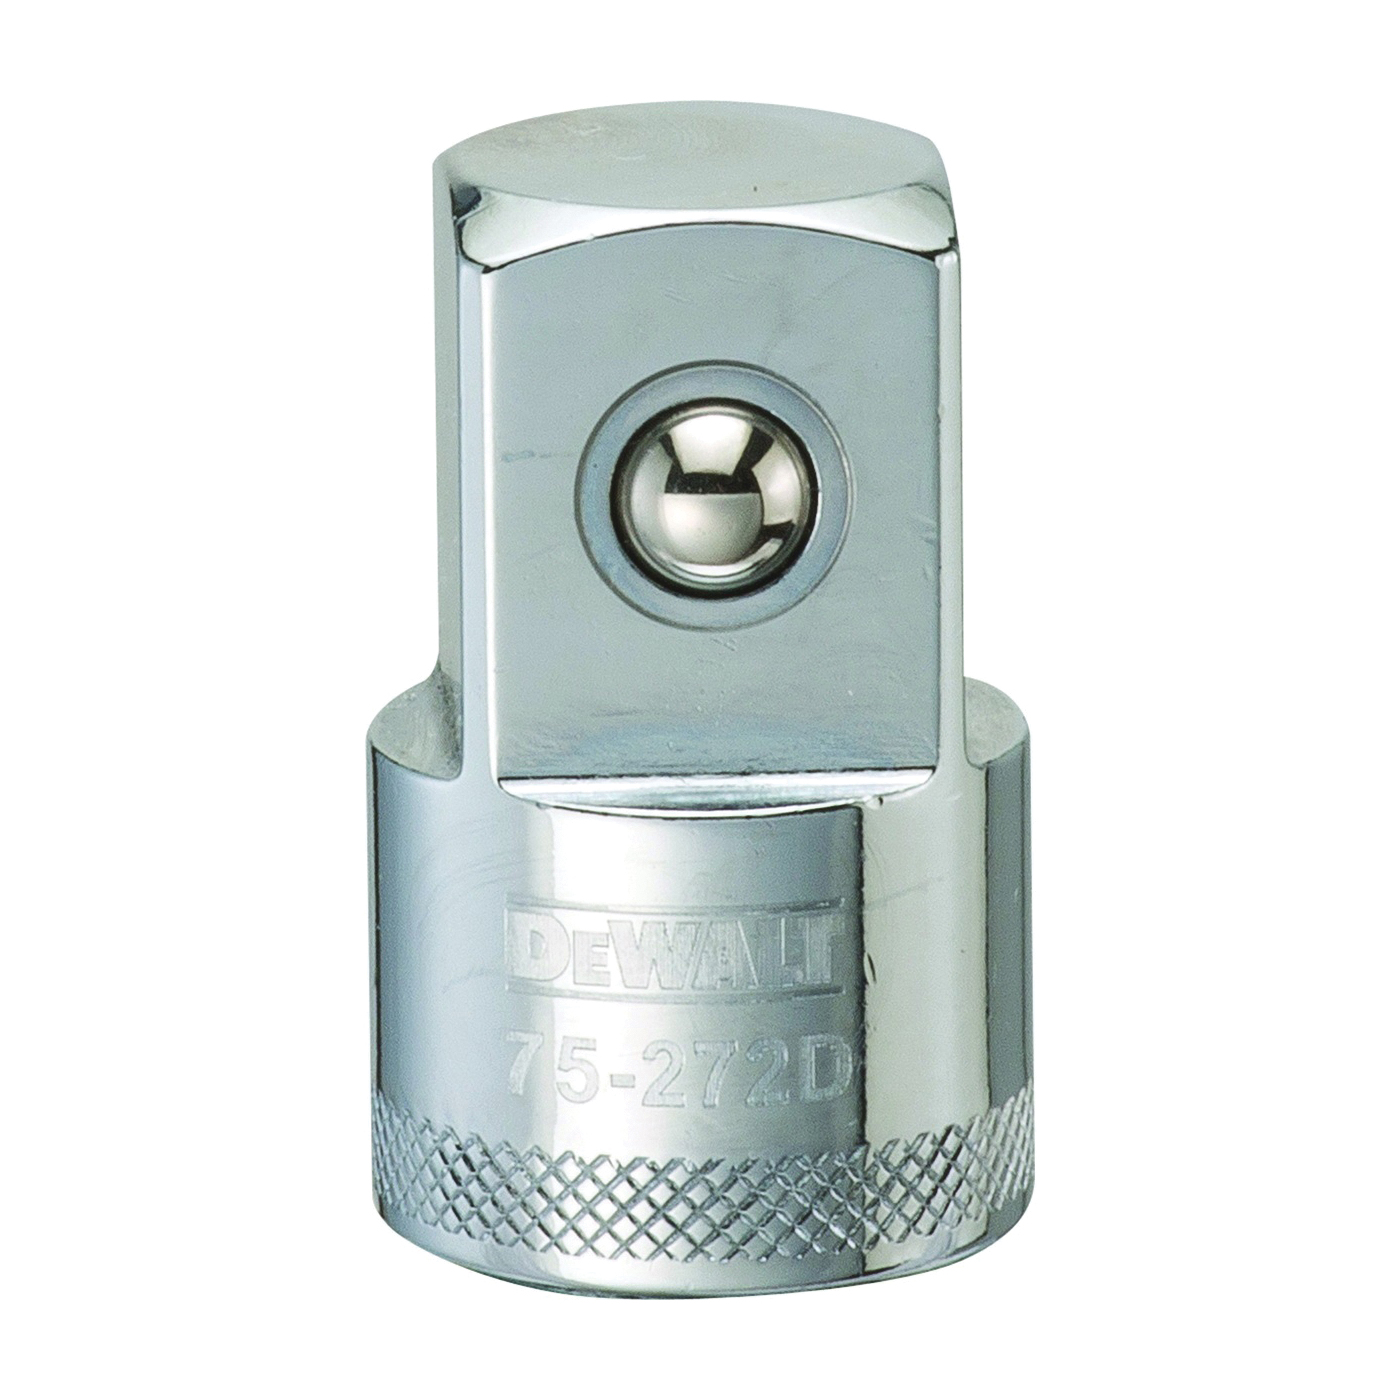 Picture of DeWALT DWMT75272OSP Increasing Socket Adapter, 1/2 in Drive, Female Drive, 3/4 in Output Drive, Male Output Drive